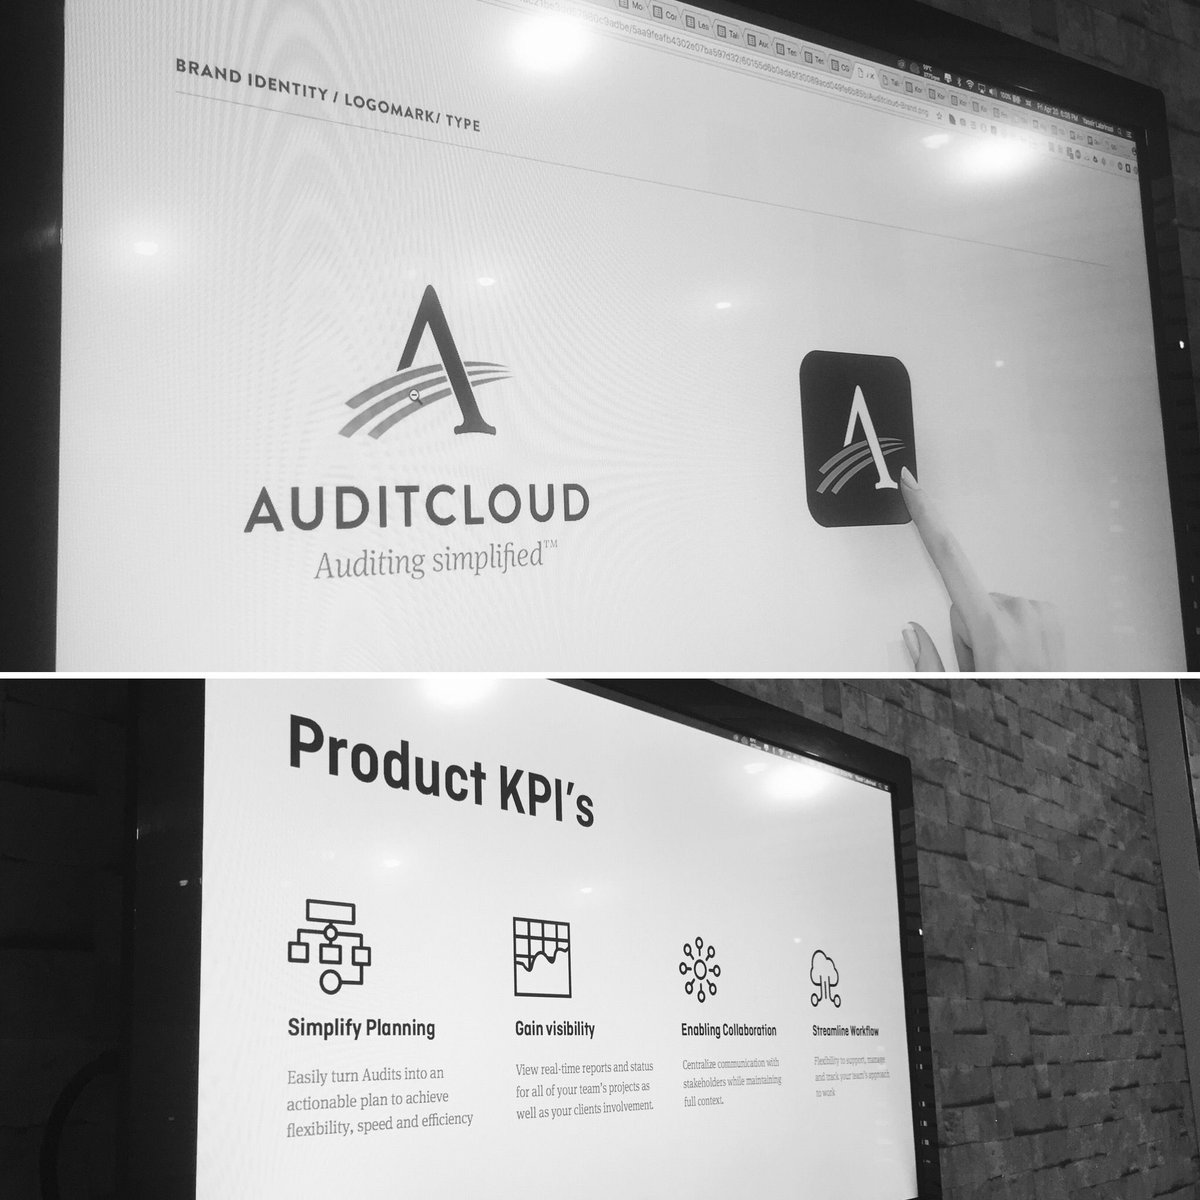 Building a Cloud-based Software as a service solution to Simplify, Plan and Perform Smart Audits for CPAs...  #Highness #AuditCloud #Planning #Visibility #Collaboration #Workflow #App #SaaS #Cloud #Branding #Design #UX #IA<br>http://pic.twitter.com/Tr9knIN6xd